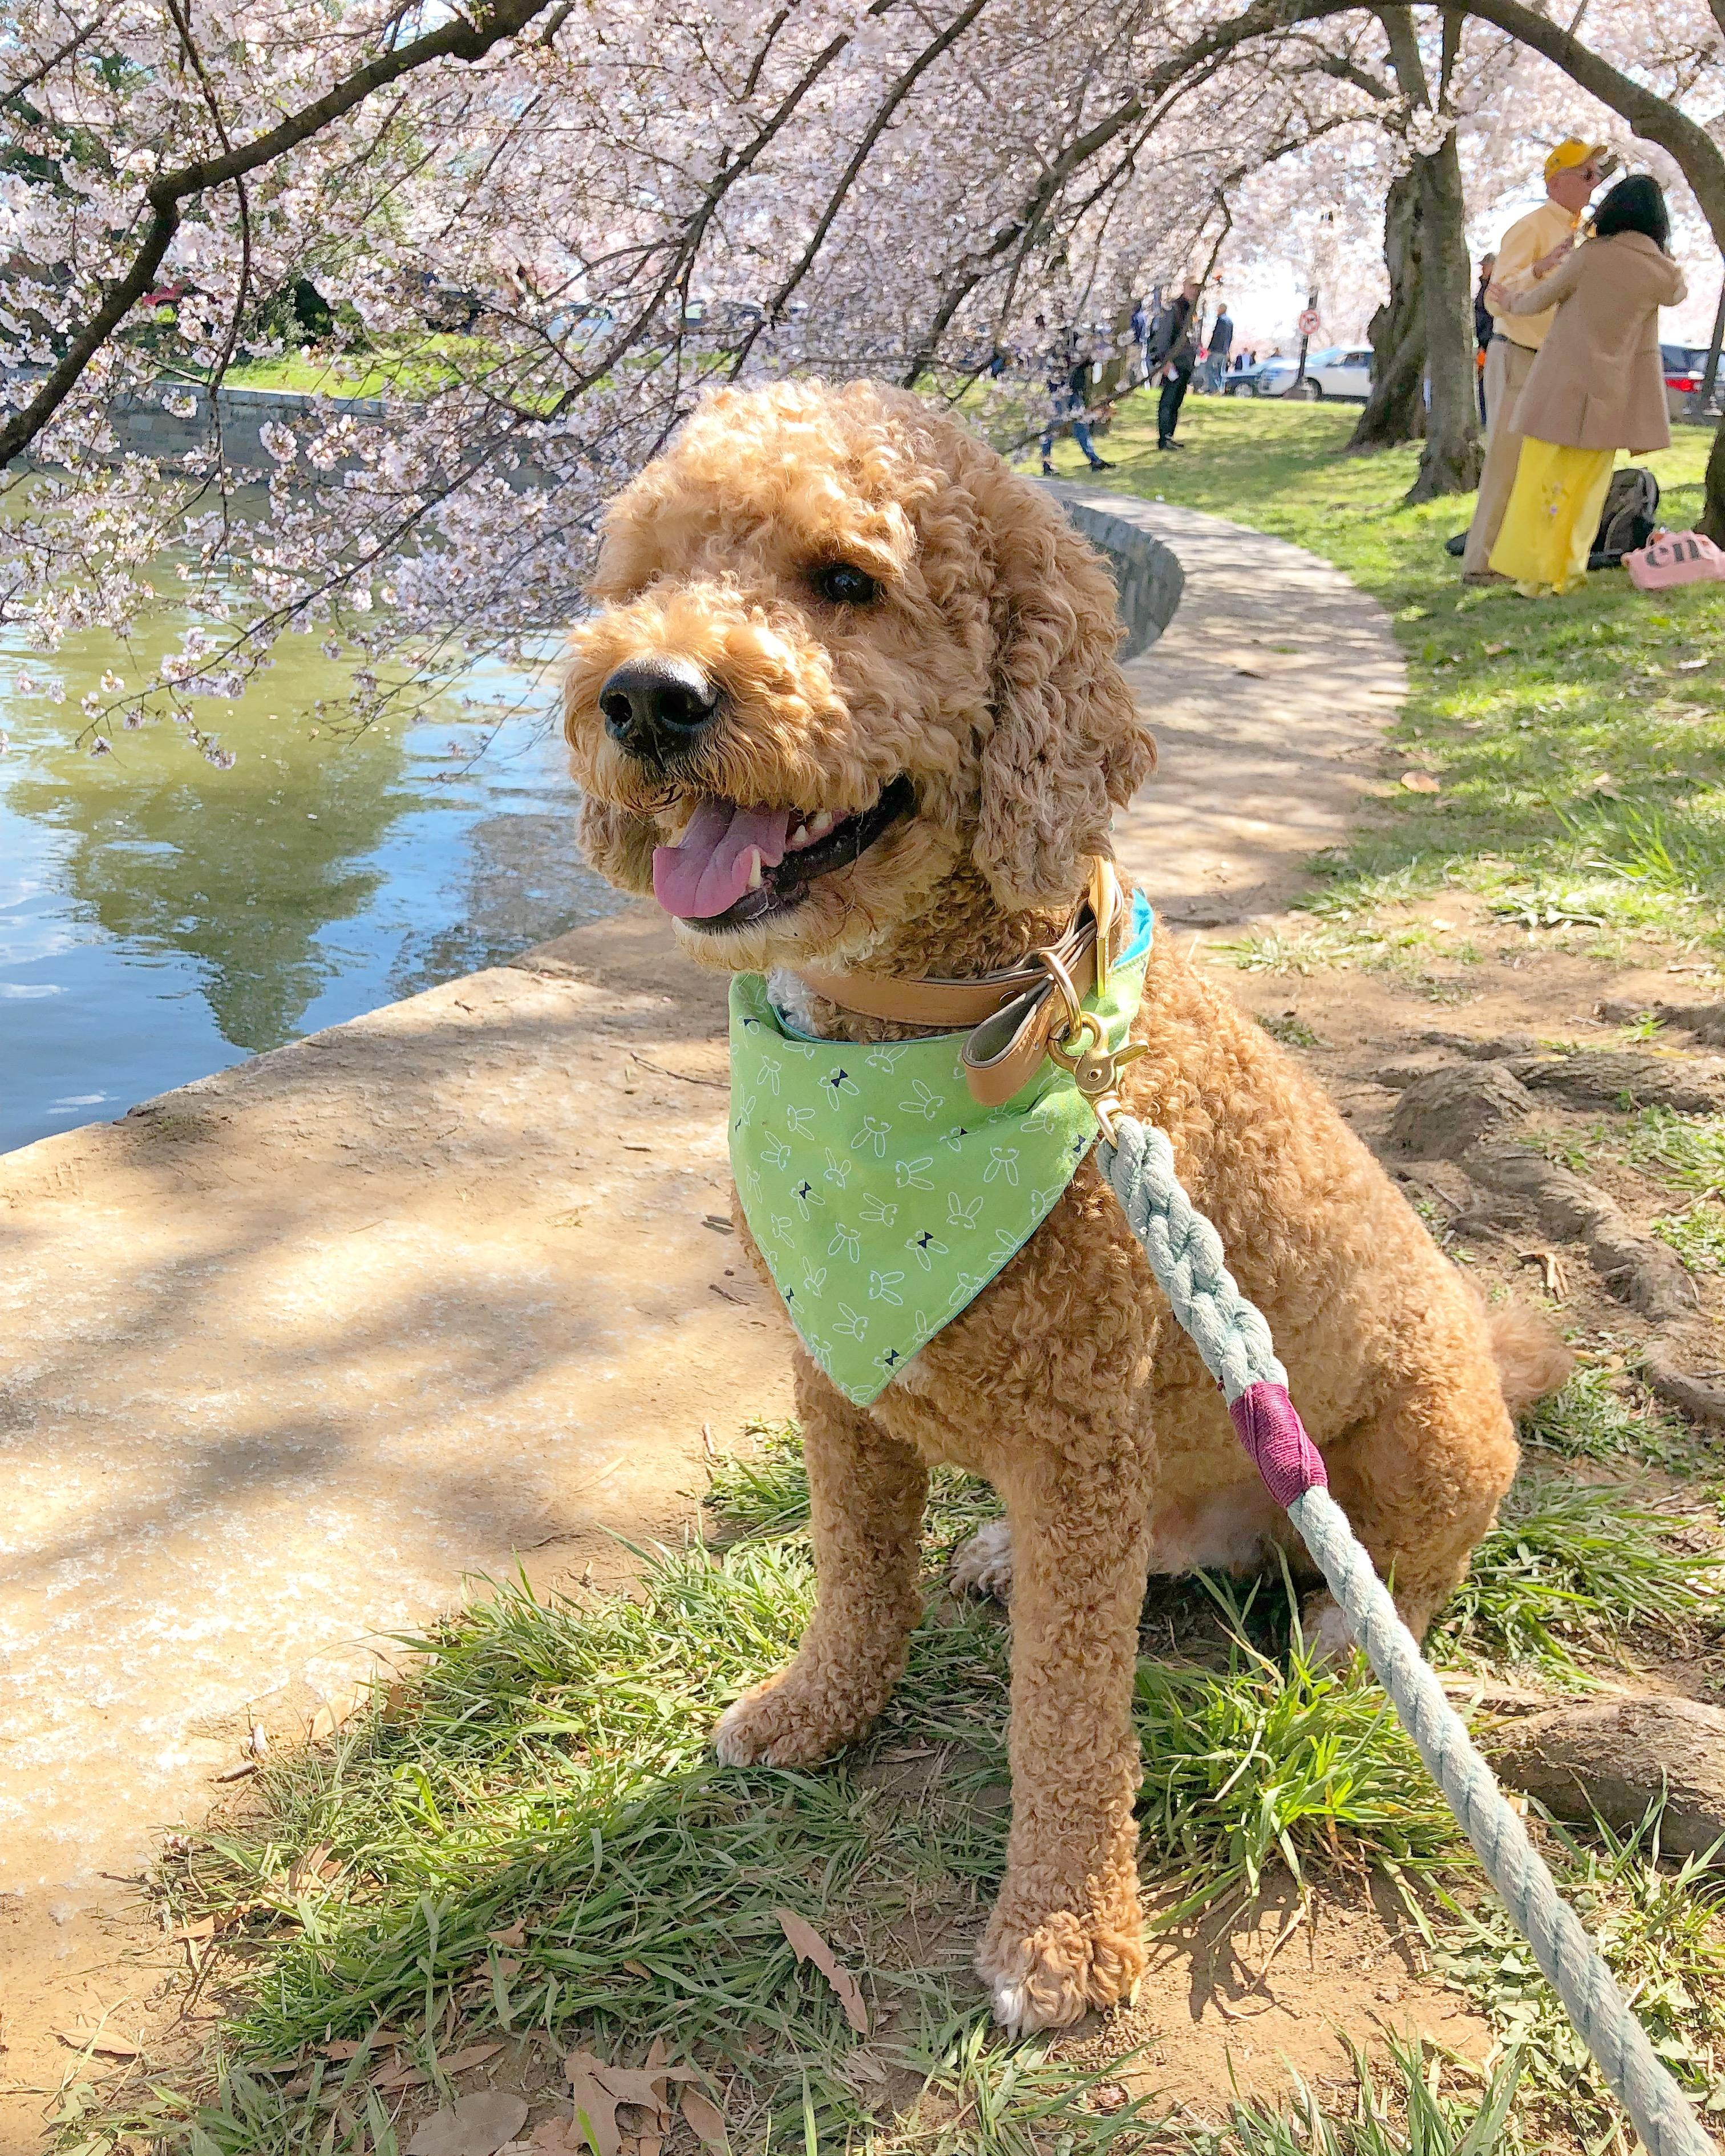 In honor of National Pet Day (which is basically like Christmas around here!) we checked in on a few of our favorite Instagram stars to see what they've been up to lately, and we noticed many of them had paid a visit to D.C.'s beloved blossoms. So for this week's special RUFFined Spotlight, we give you some adorable four-legged admirers of the cherry blossoms! (Image: via IG user @liamfitzdoodle / instagram.com/liamfitzdoodle/)